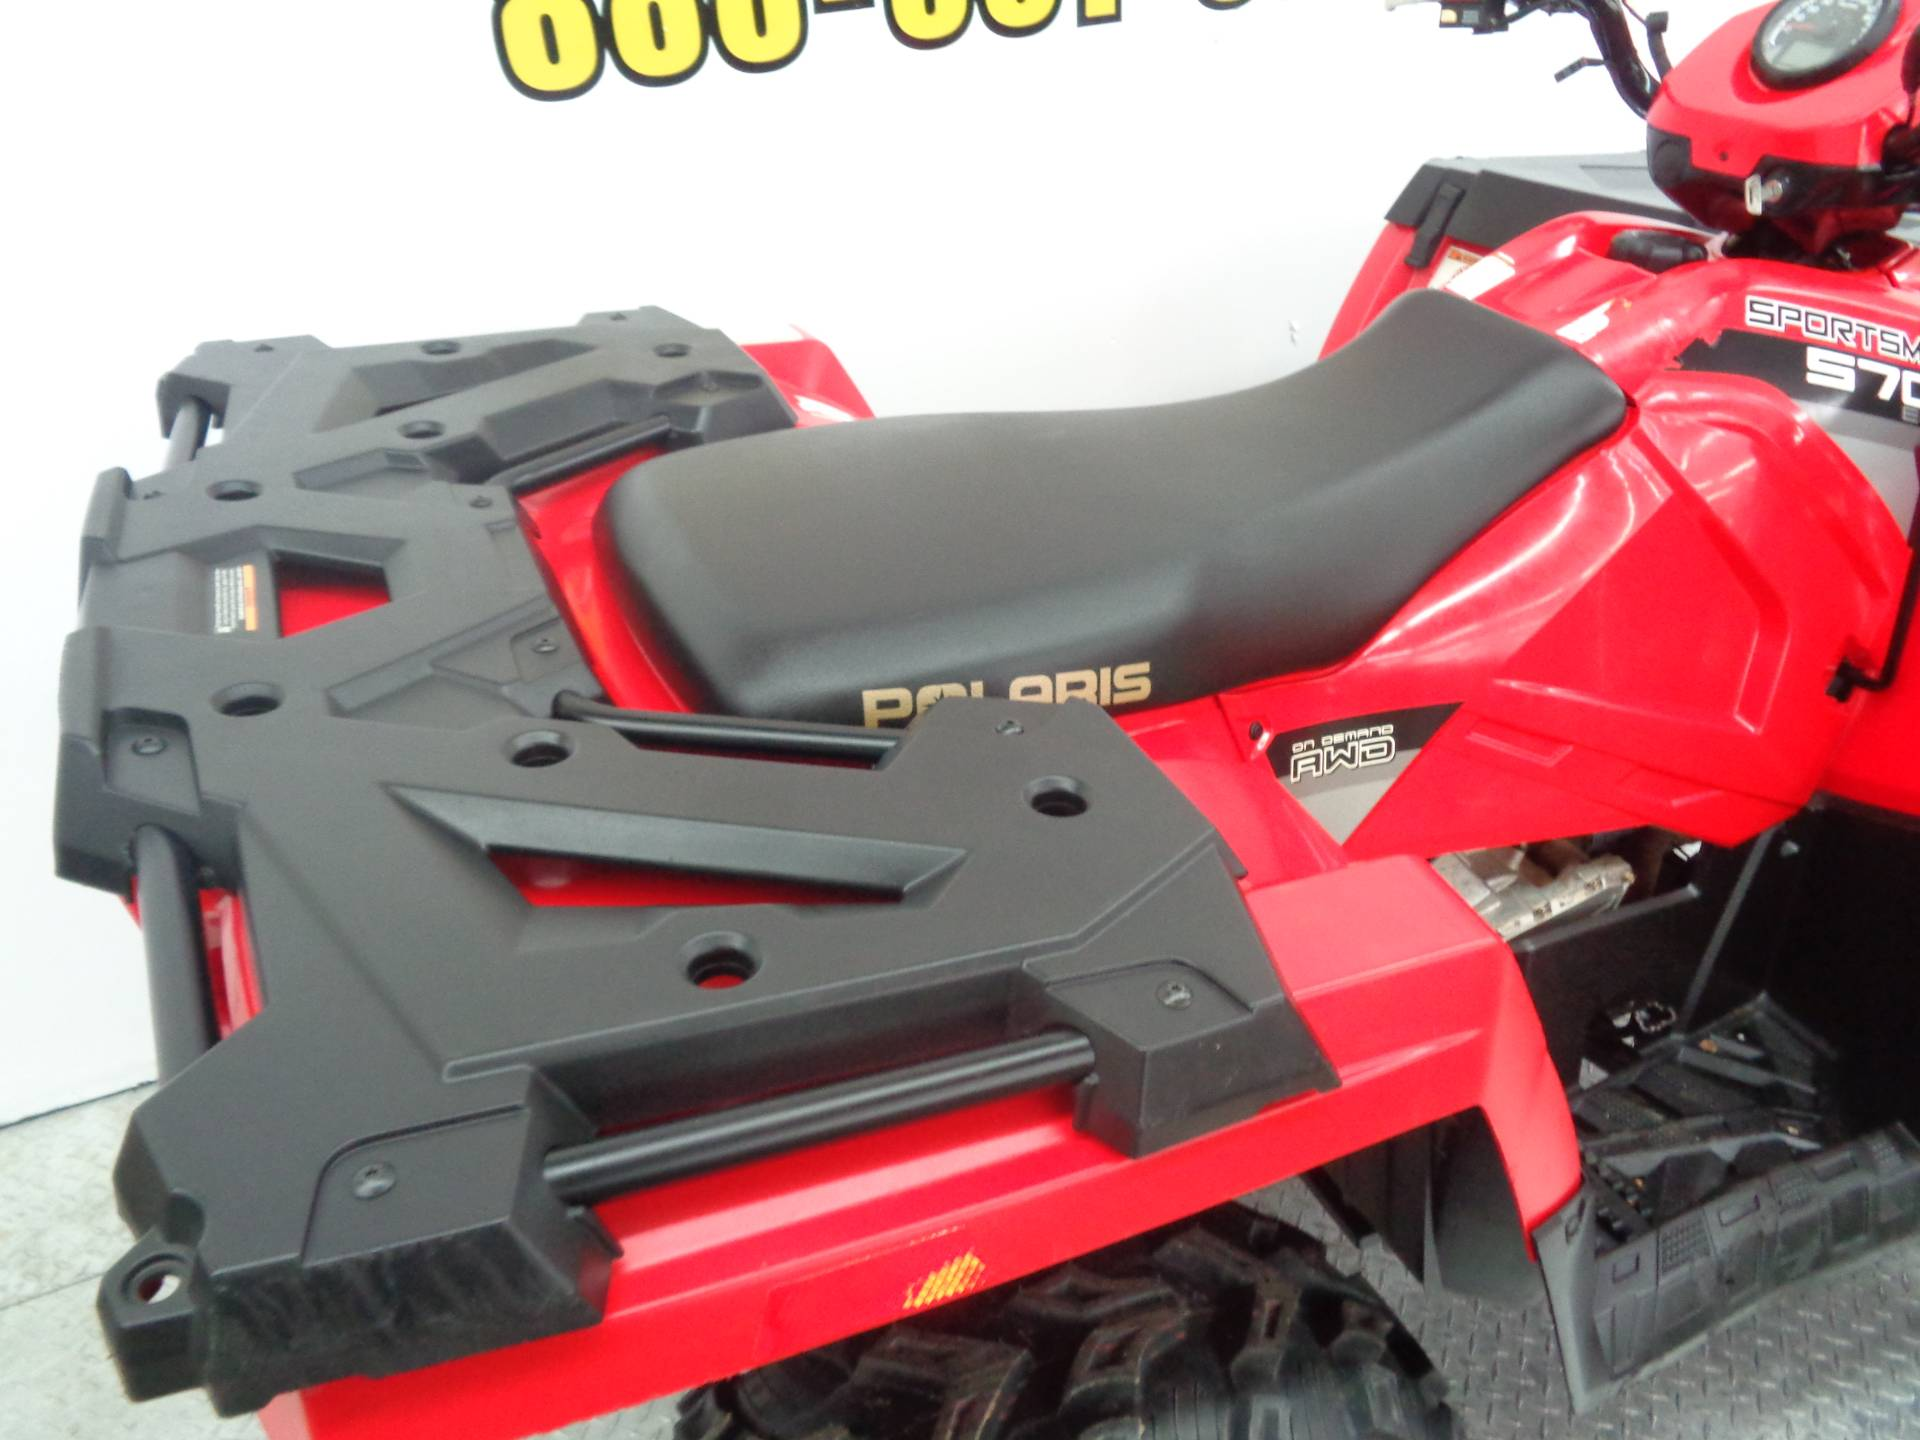 2015 Polaris Sportsman® 570 in Tulsa, Oklahoma